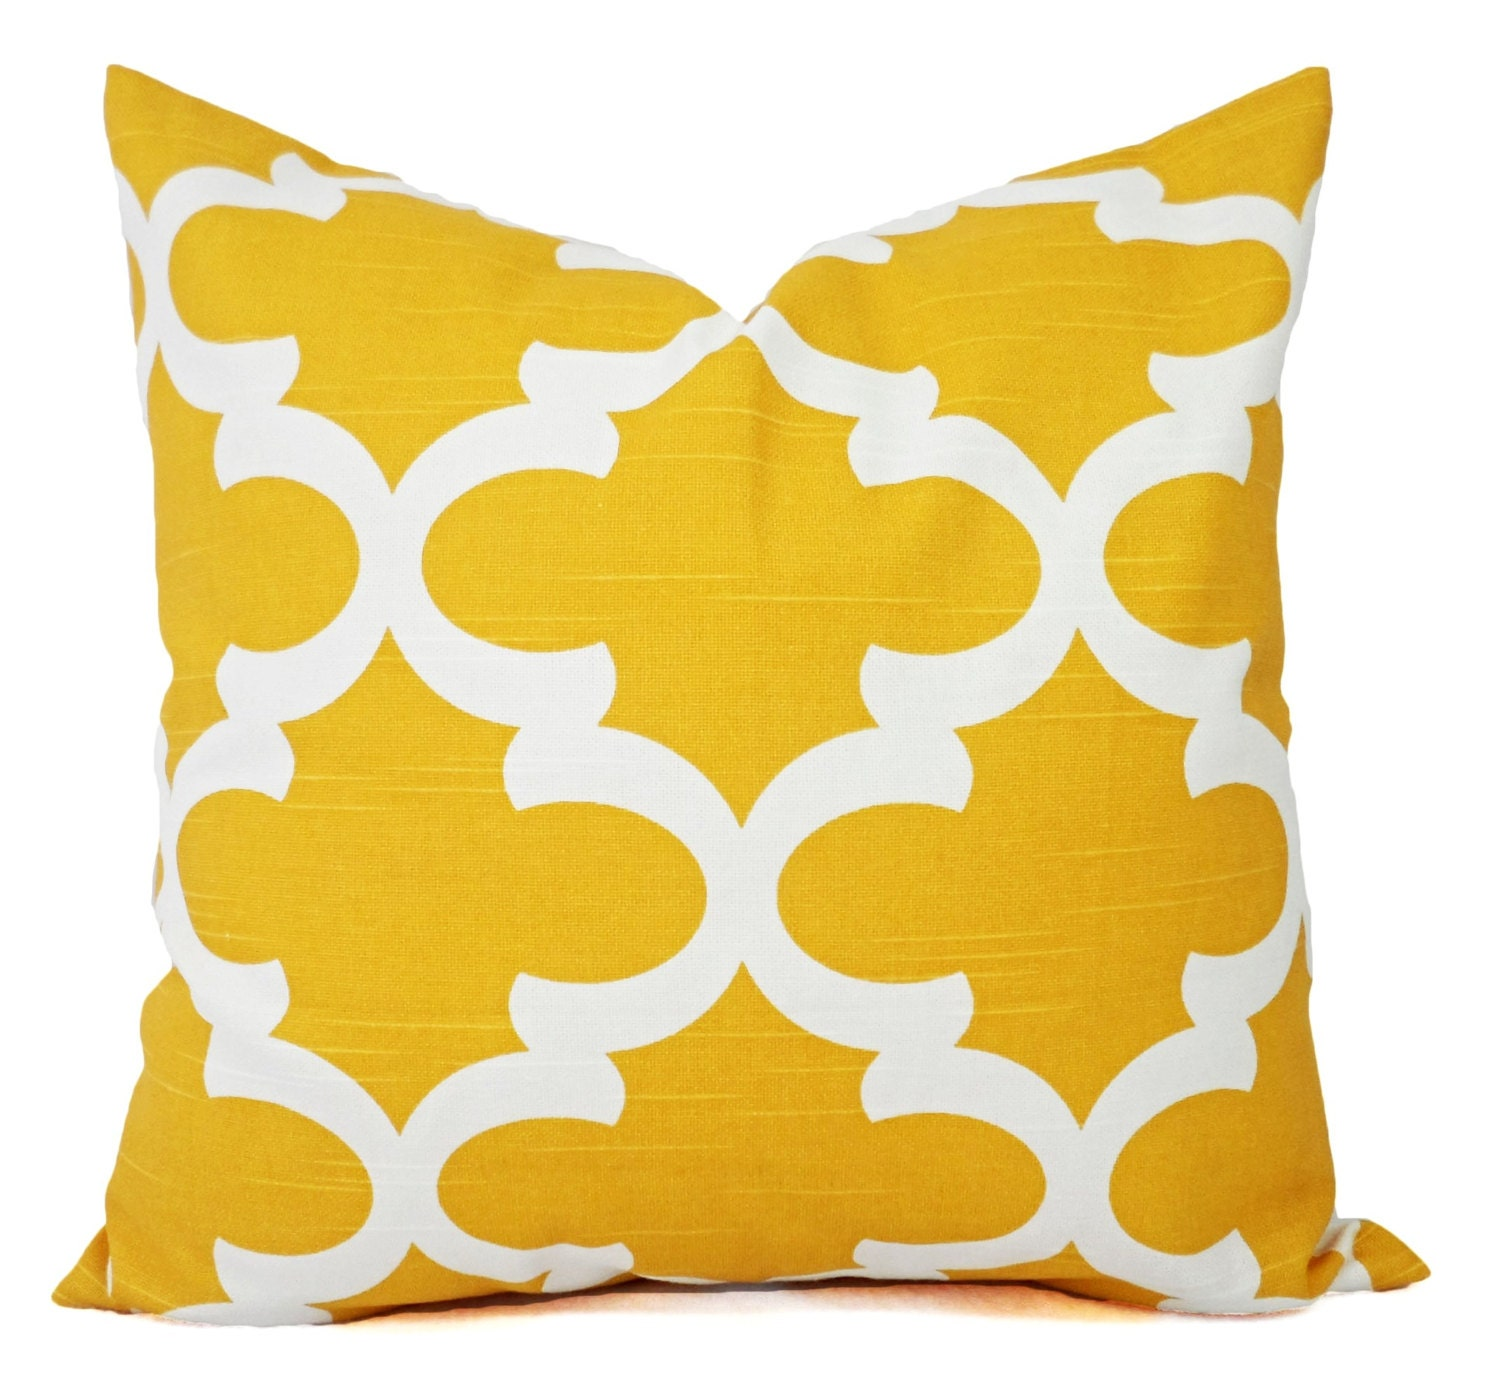 Yellow And Black Decorative Pillows : Yellow Decorative Pillows Two Yellow Throw Pillow Covers